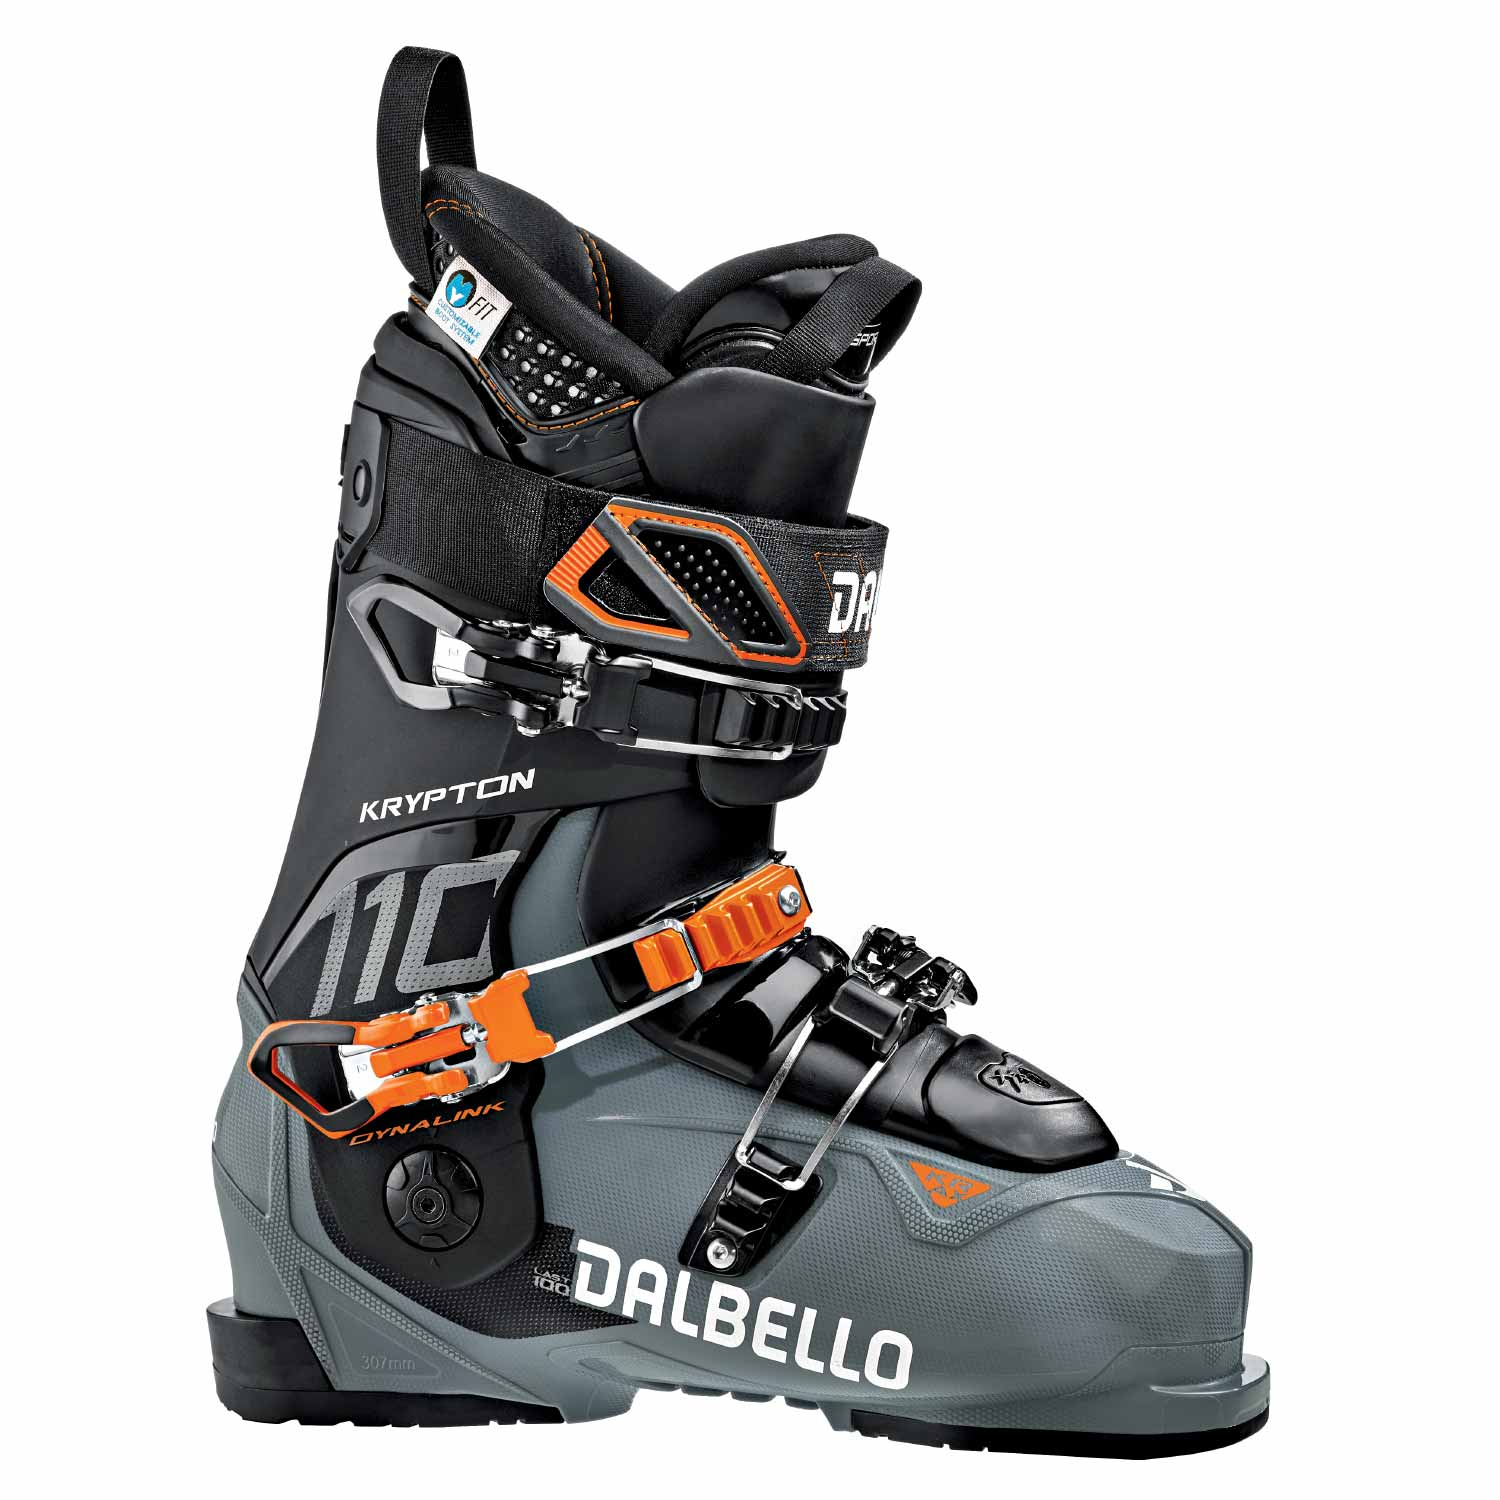 Dalbello Krypton AX 110 Ski Boot Gravel/Black 2020